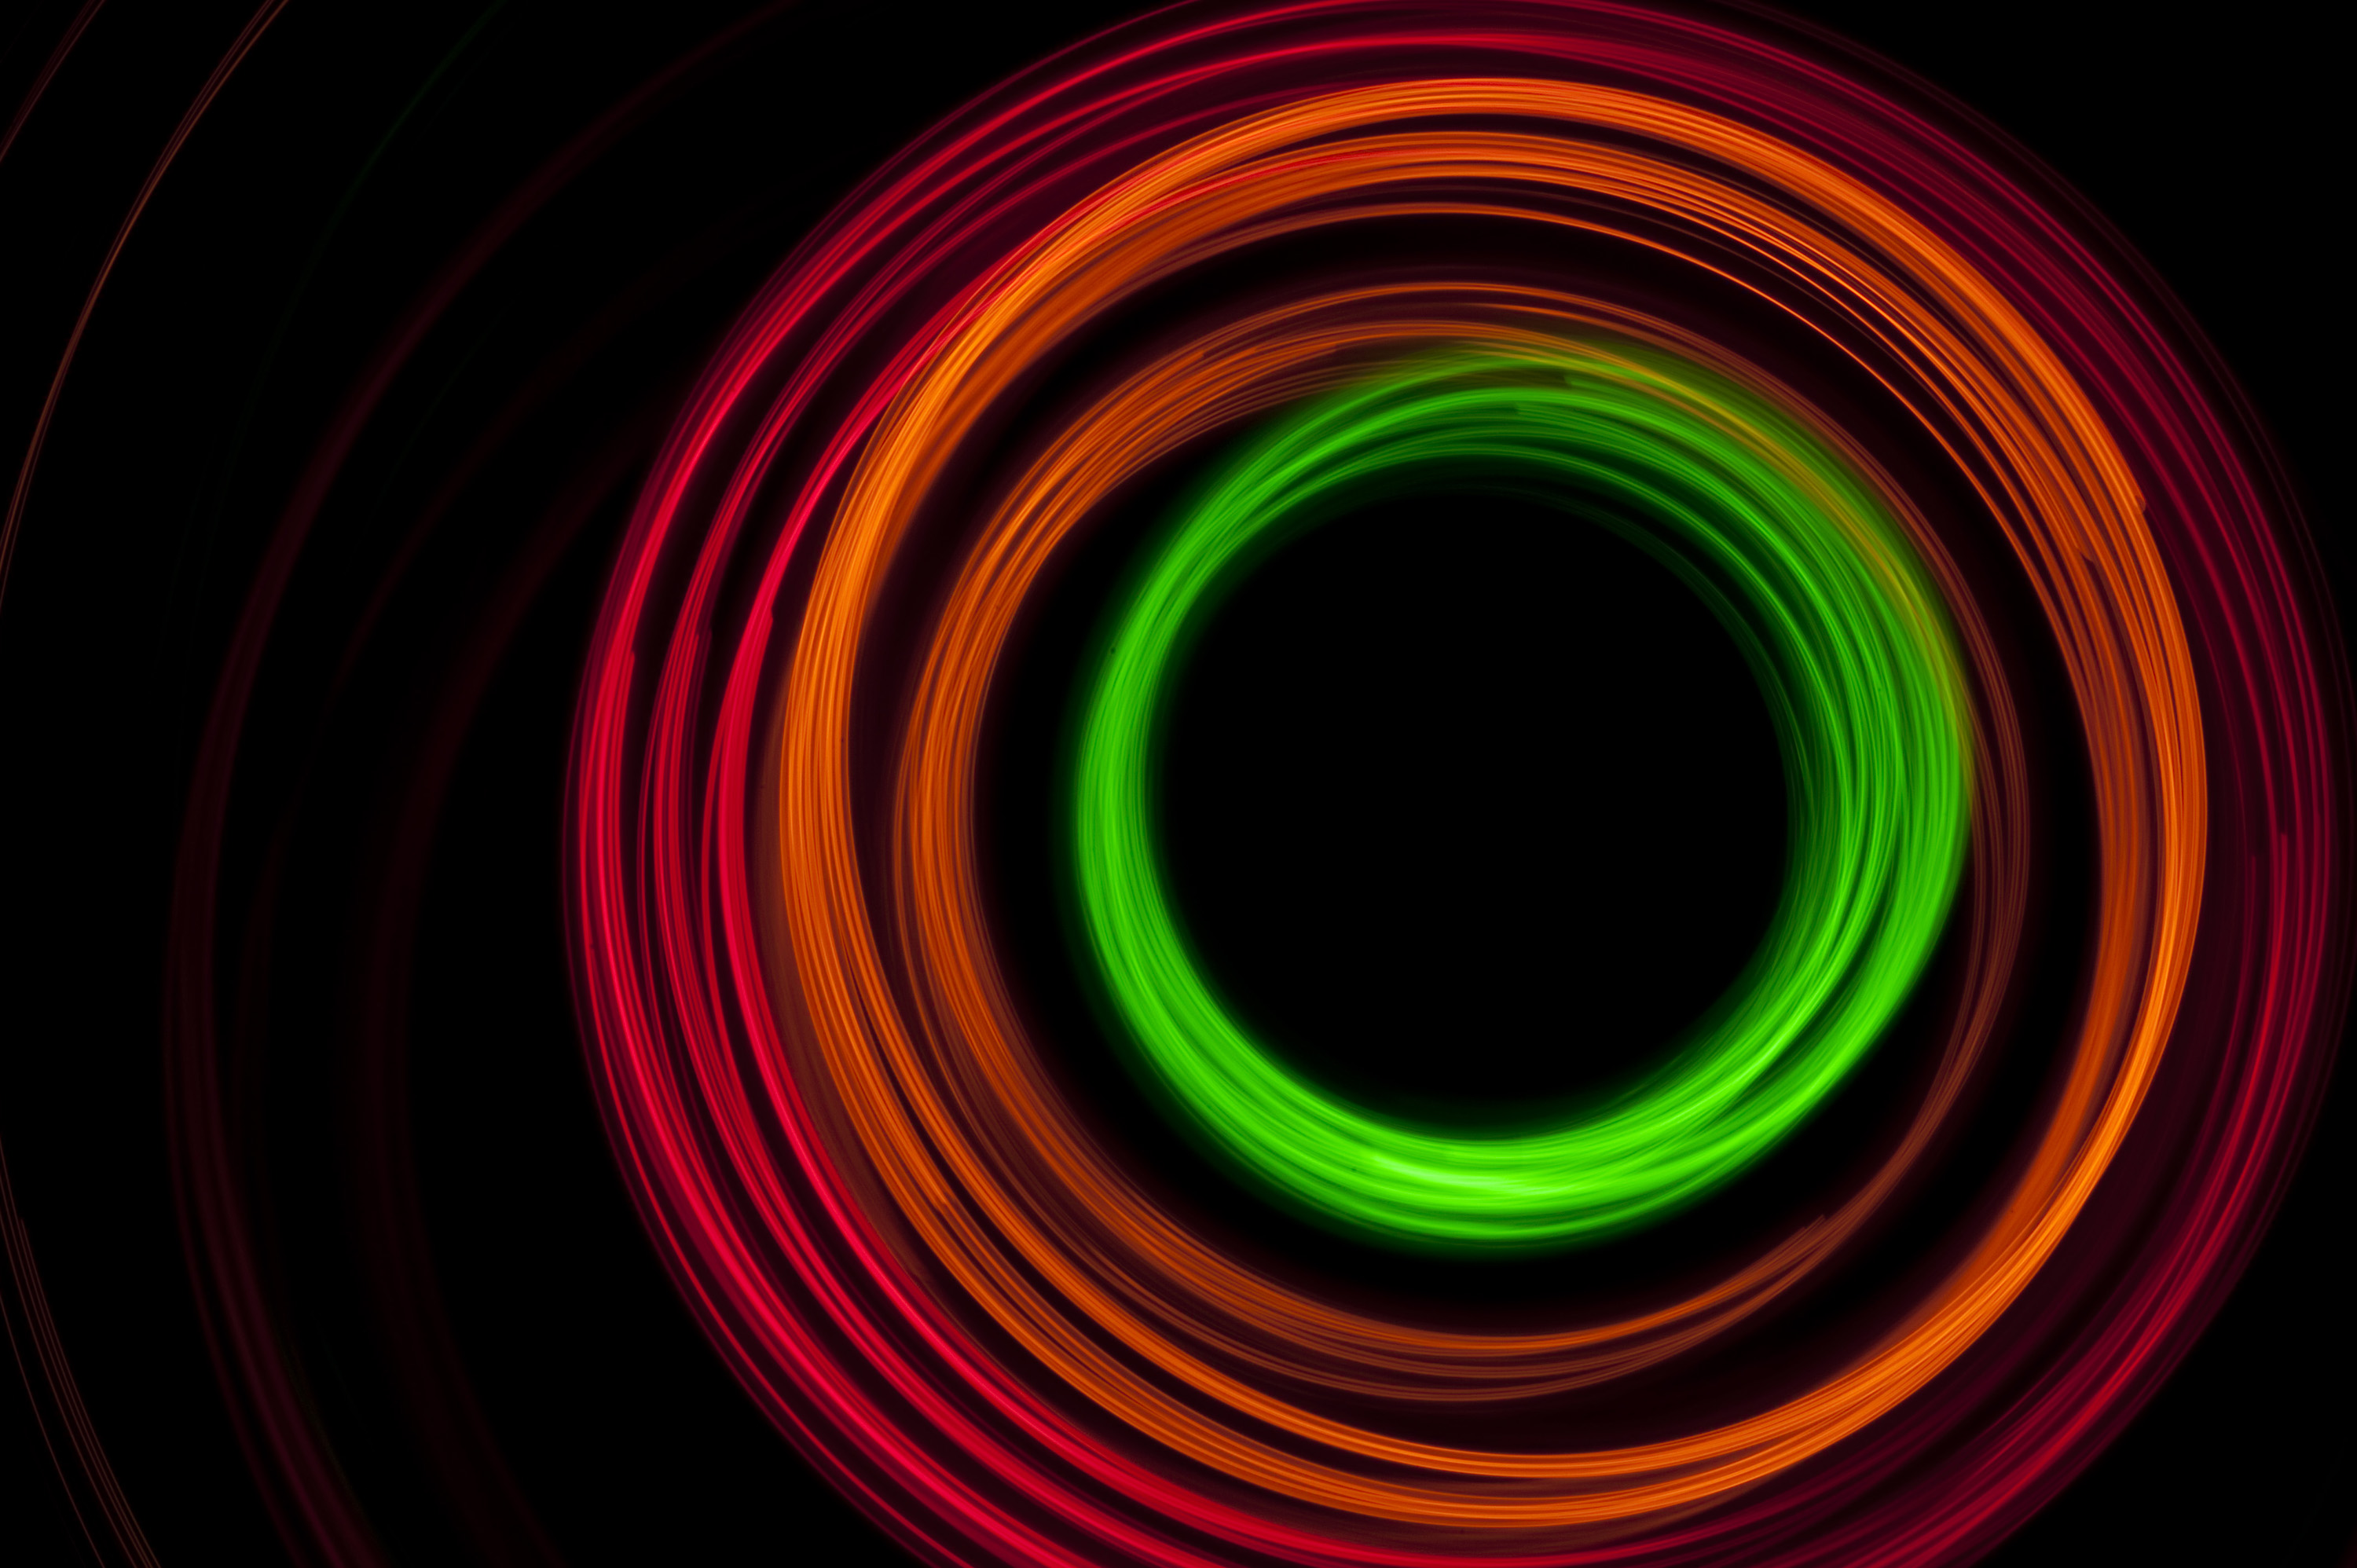 abstract hd wallpaper macbook rings pro artistic circle yk retina